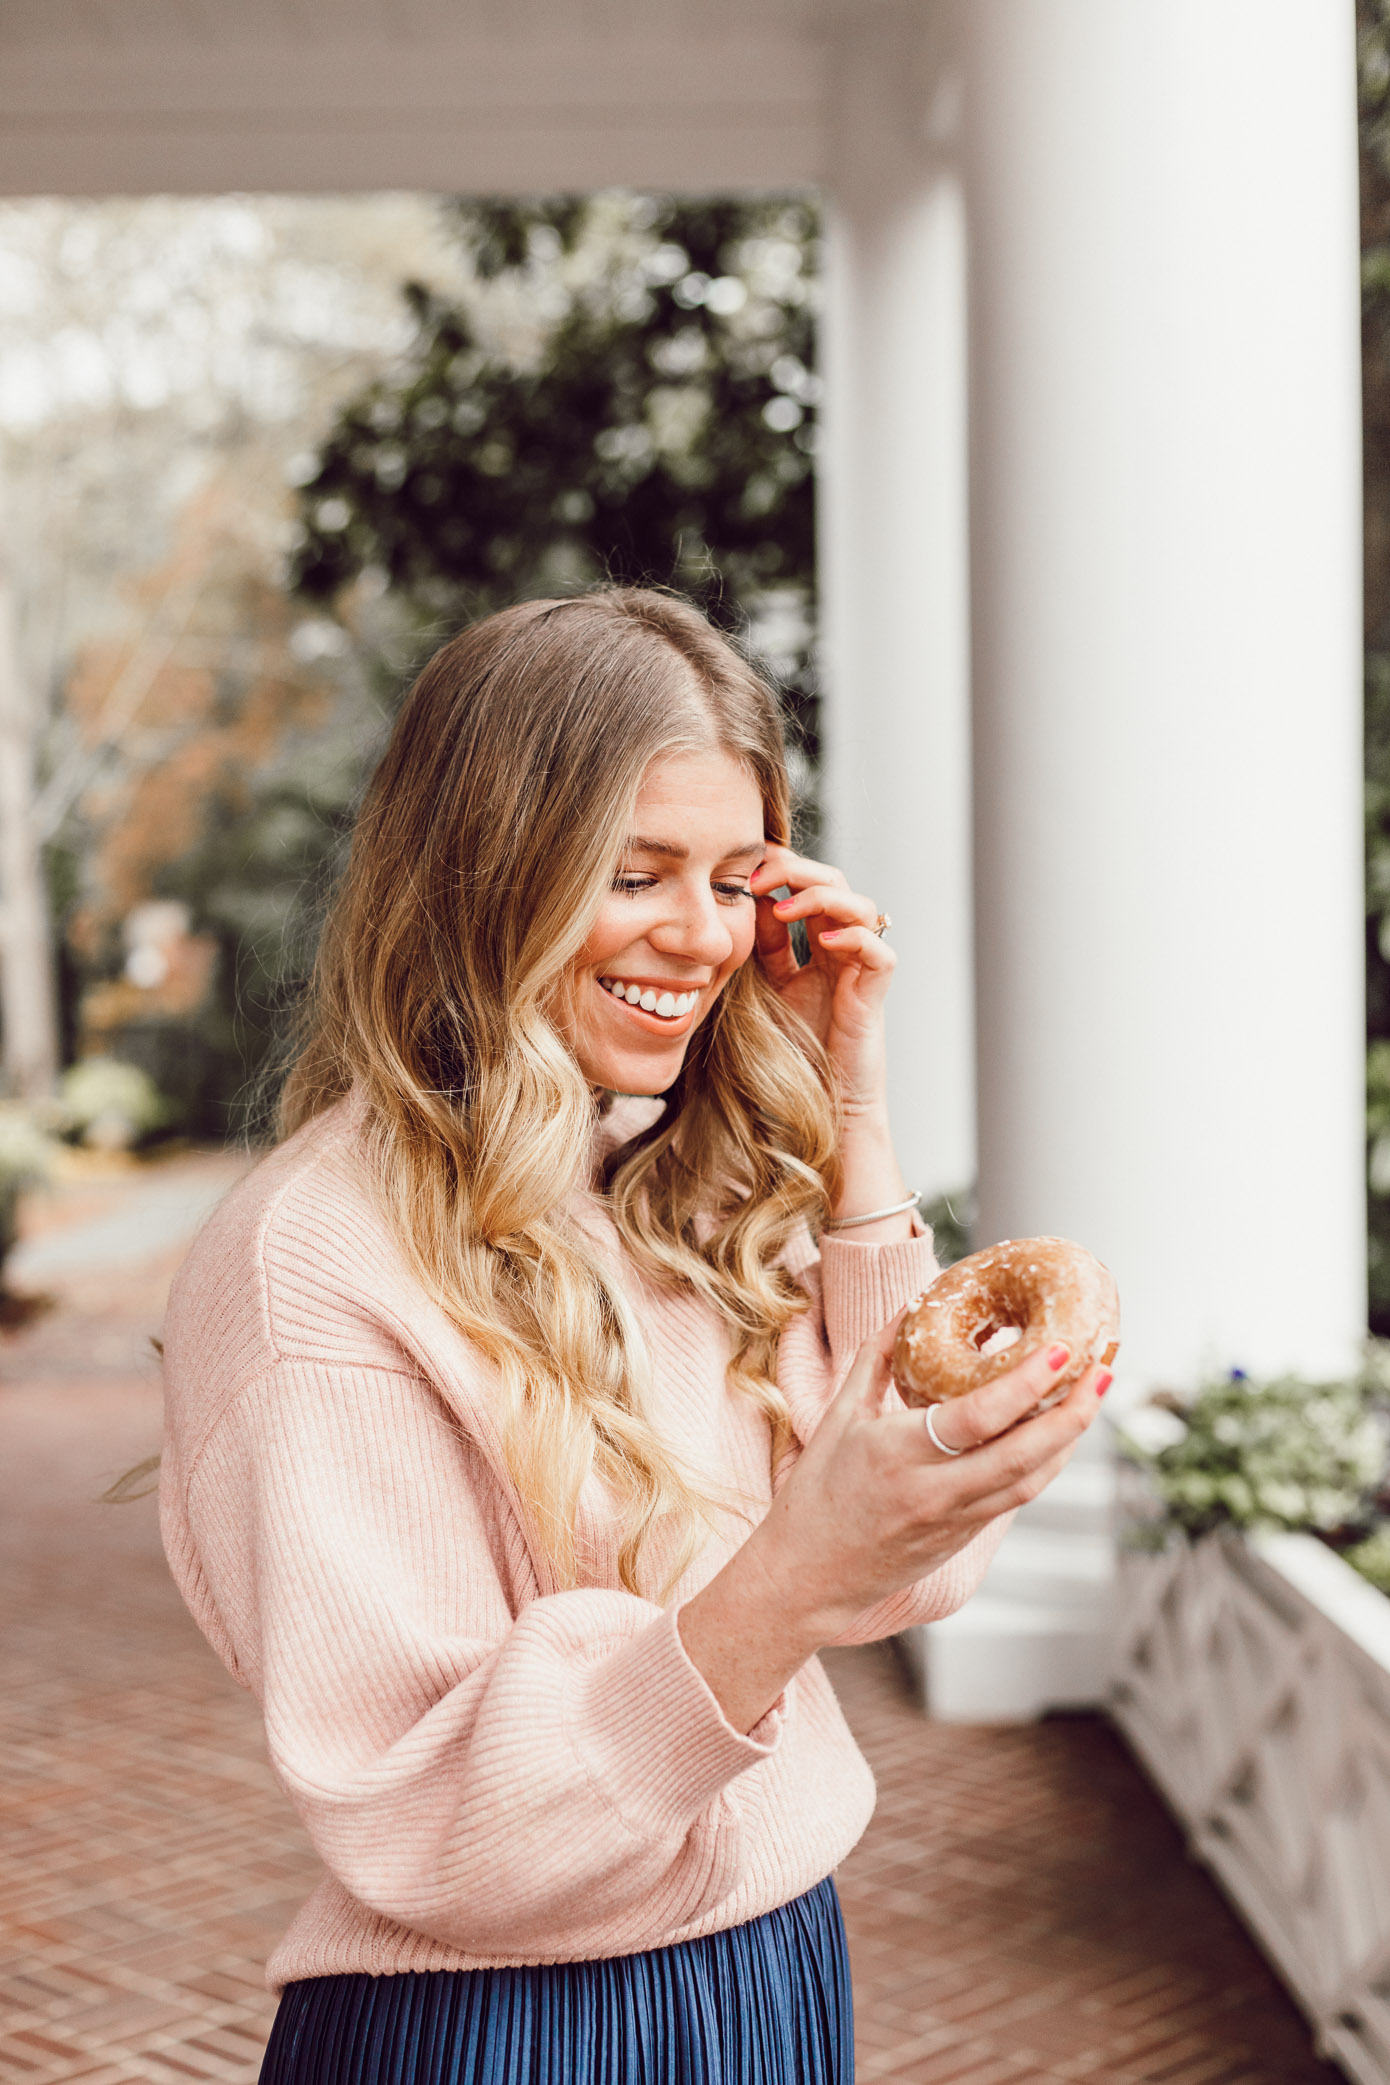 29 Life Lessons Learned featured on Louella Reese for her 29th Birthday | Old-Fashioned Cake Doughnut